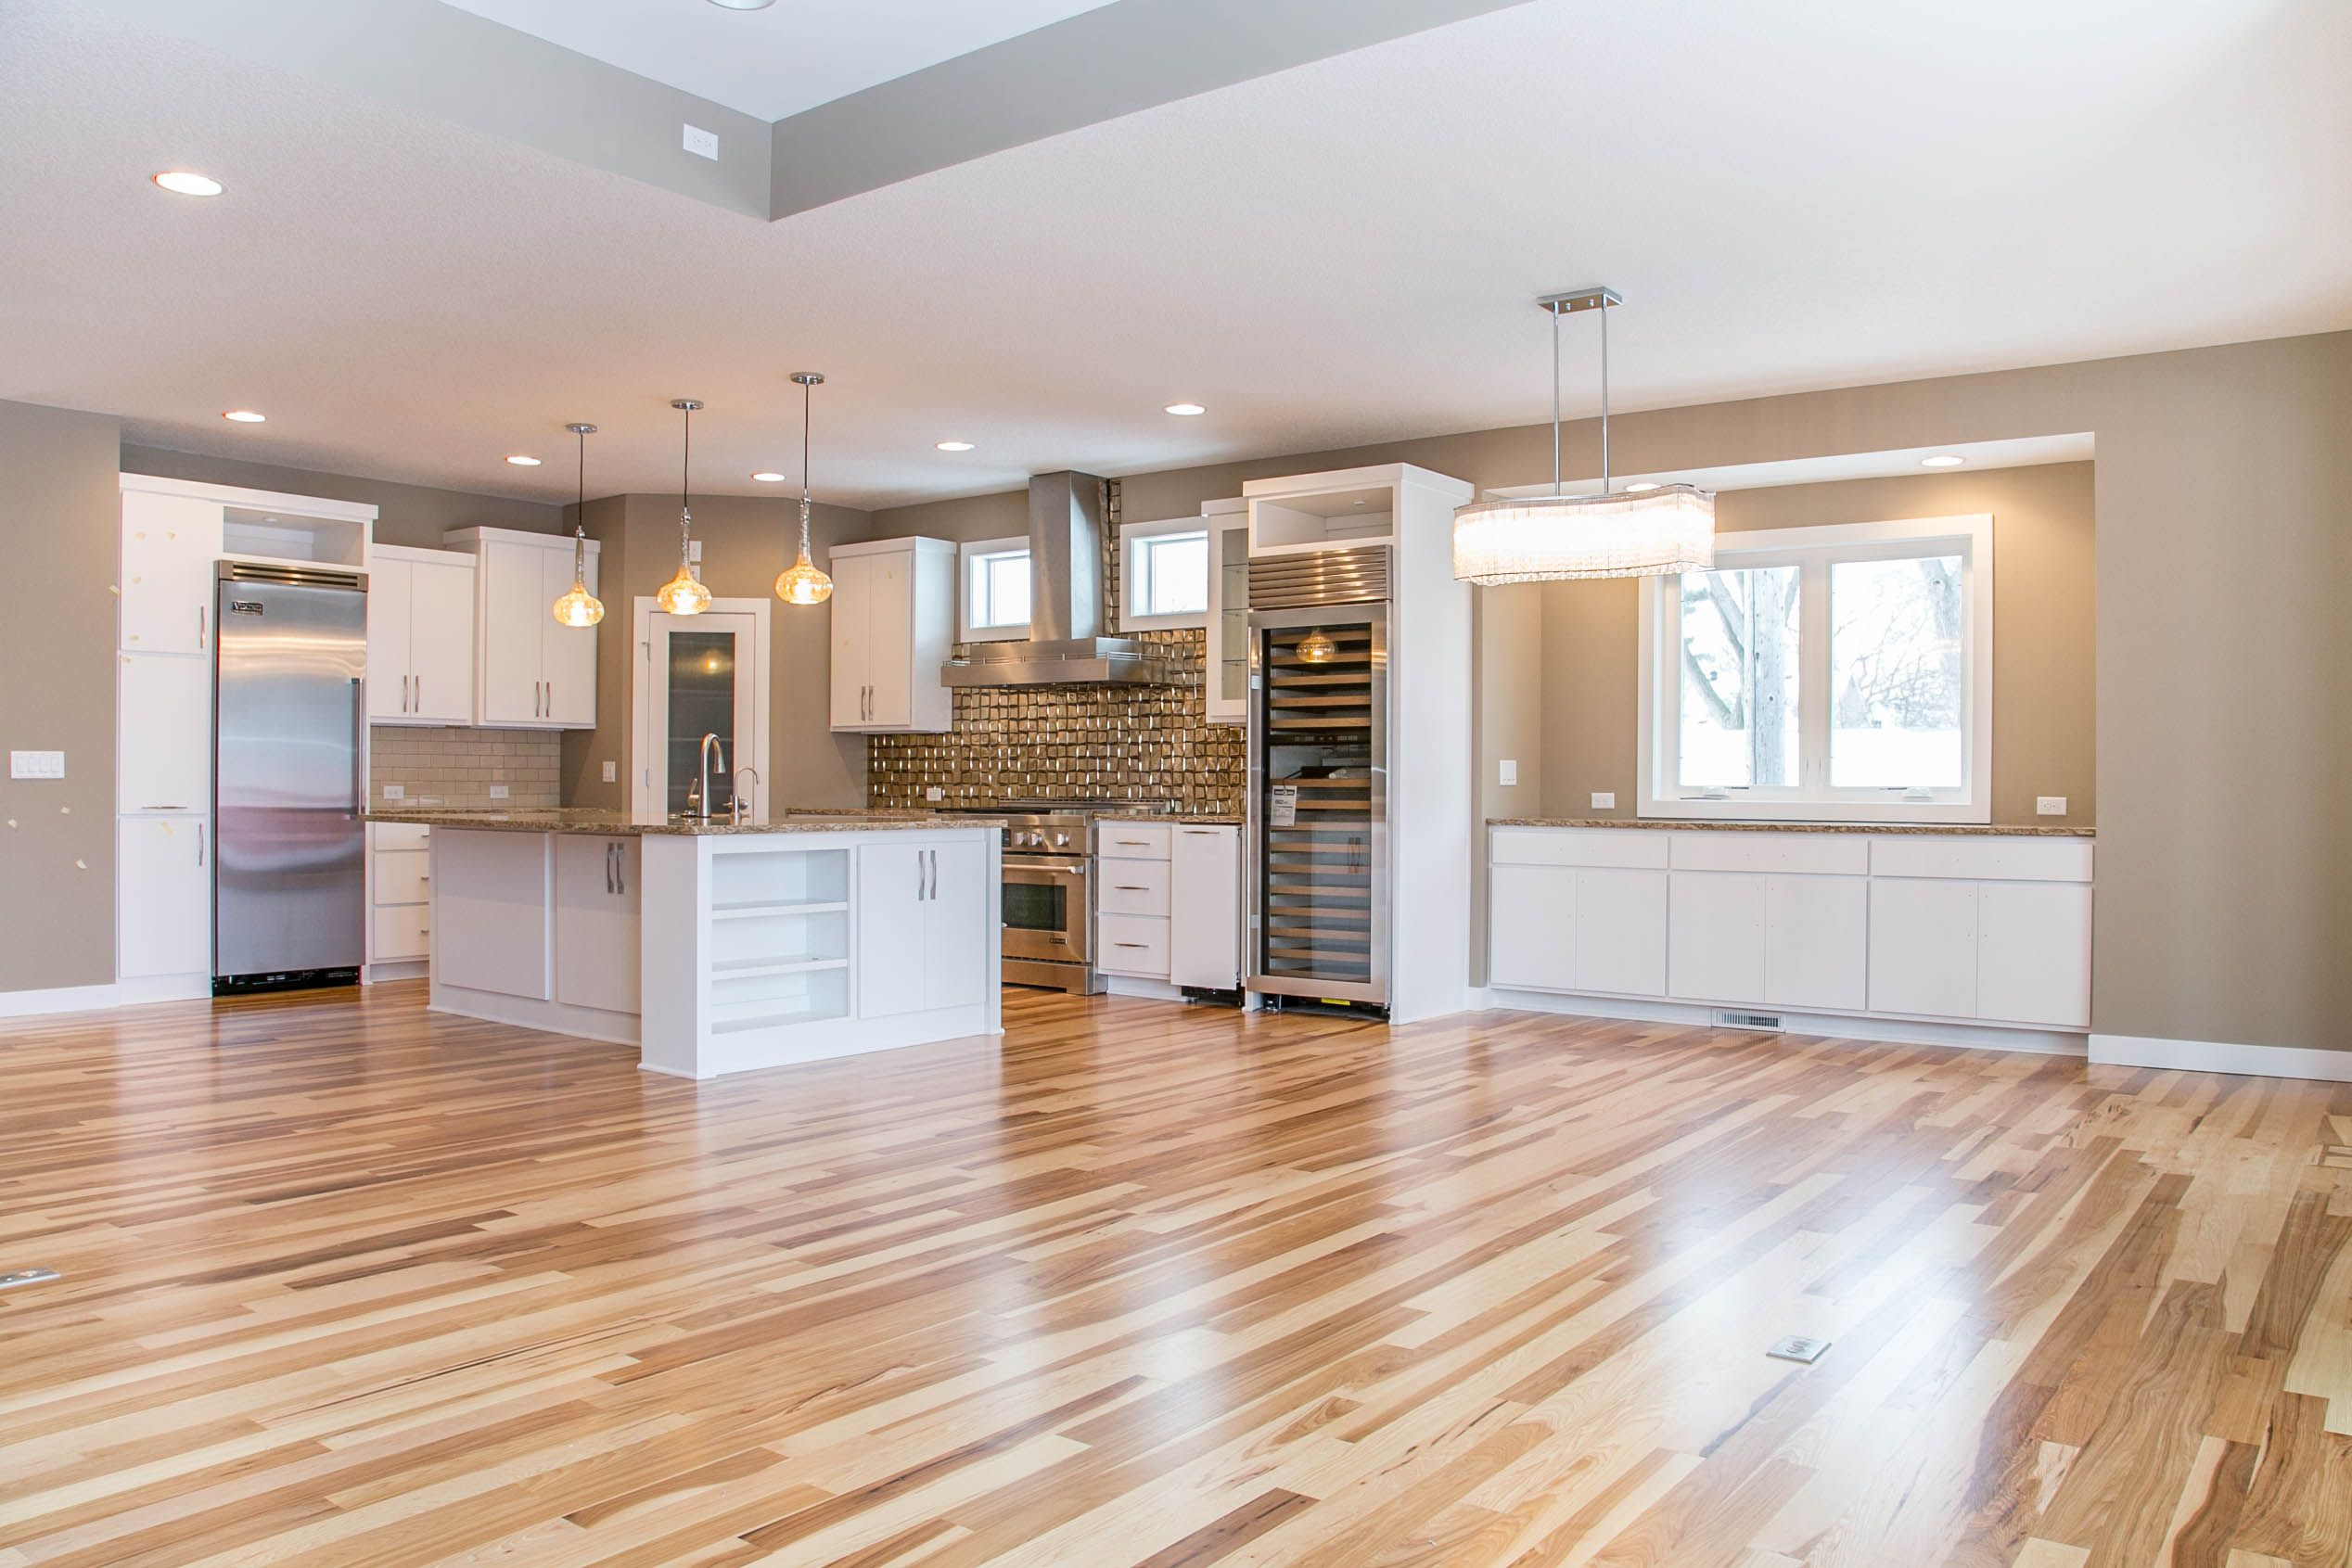 This Ldk Custom Kitchen And Dining Has The Perfect Open And Spacious Floor Plan The Maxim And Uttermost Lighting Is Stunning And S Custom Kitchen Home Kitchen